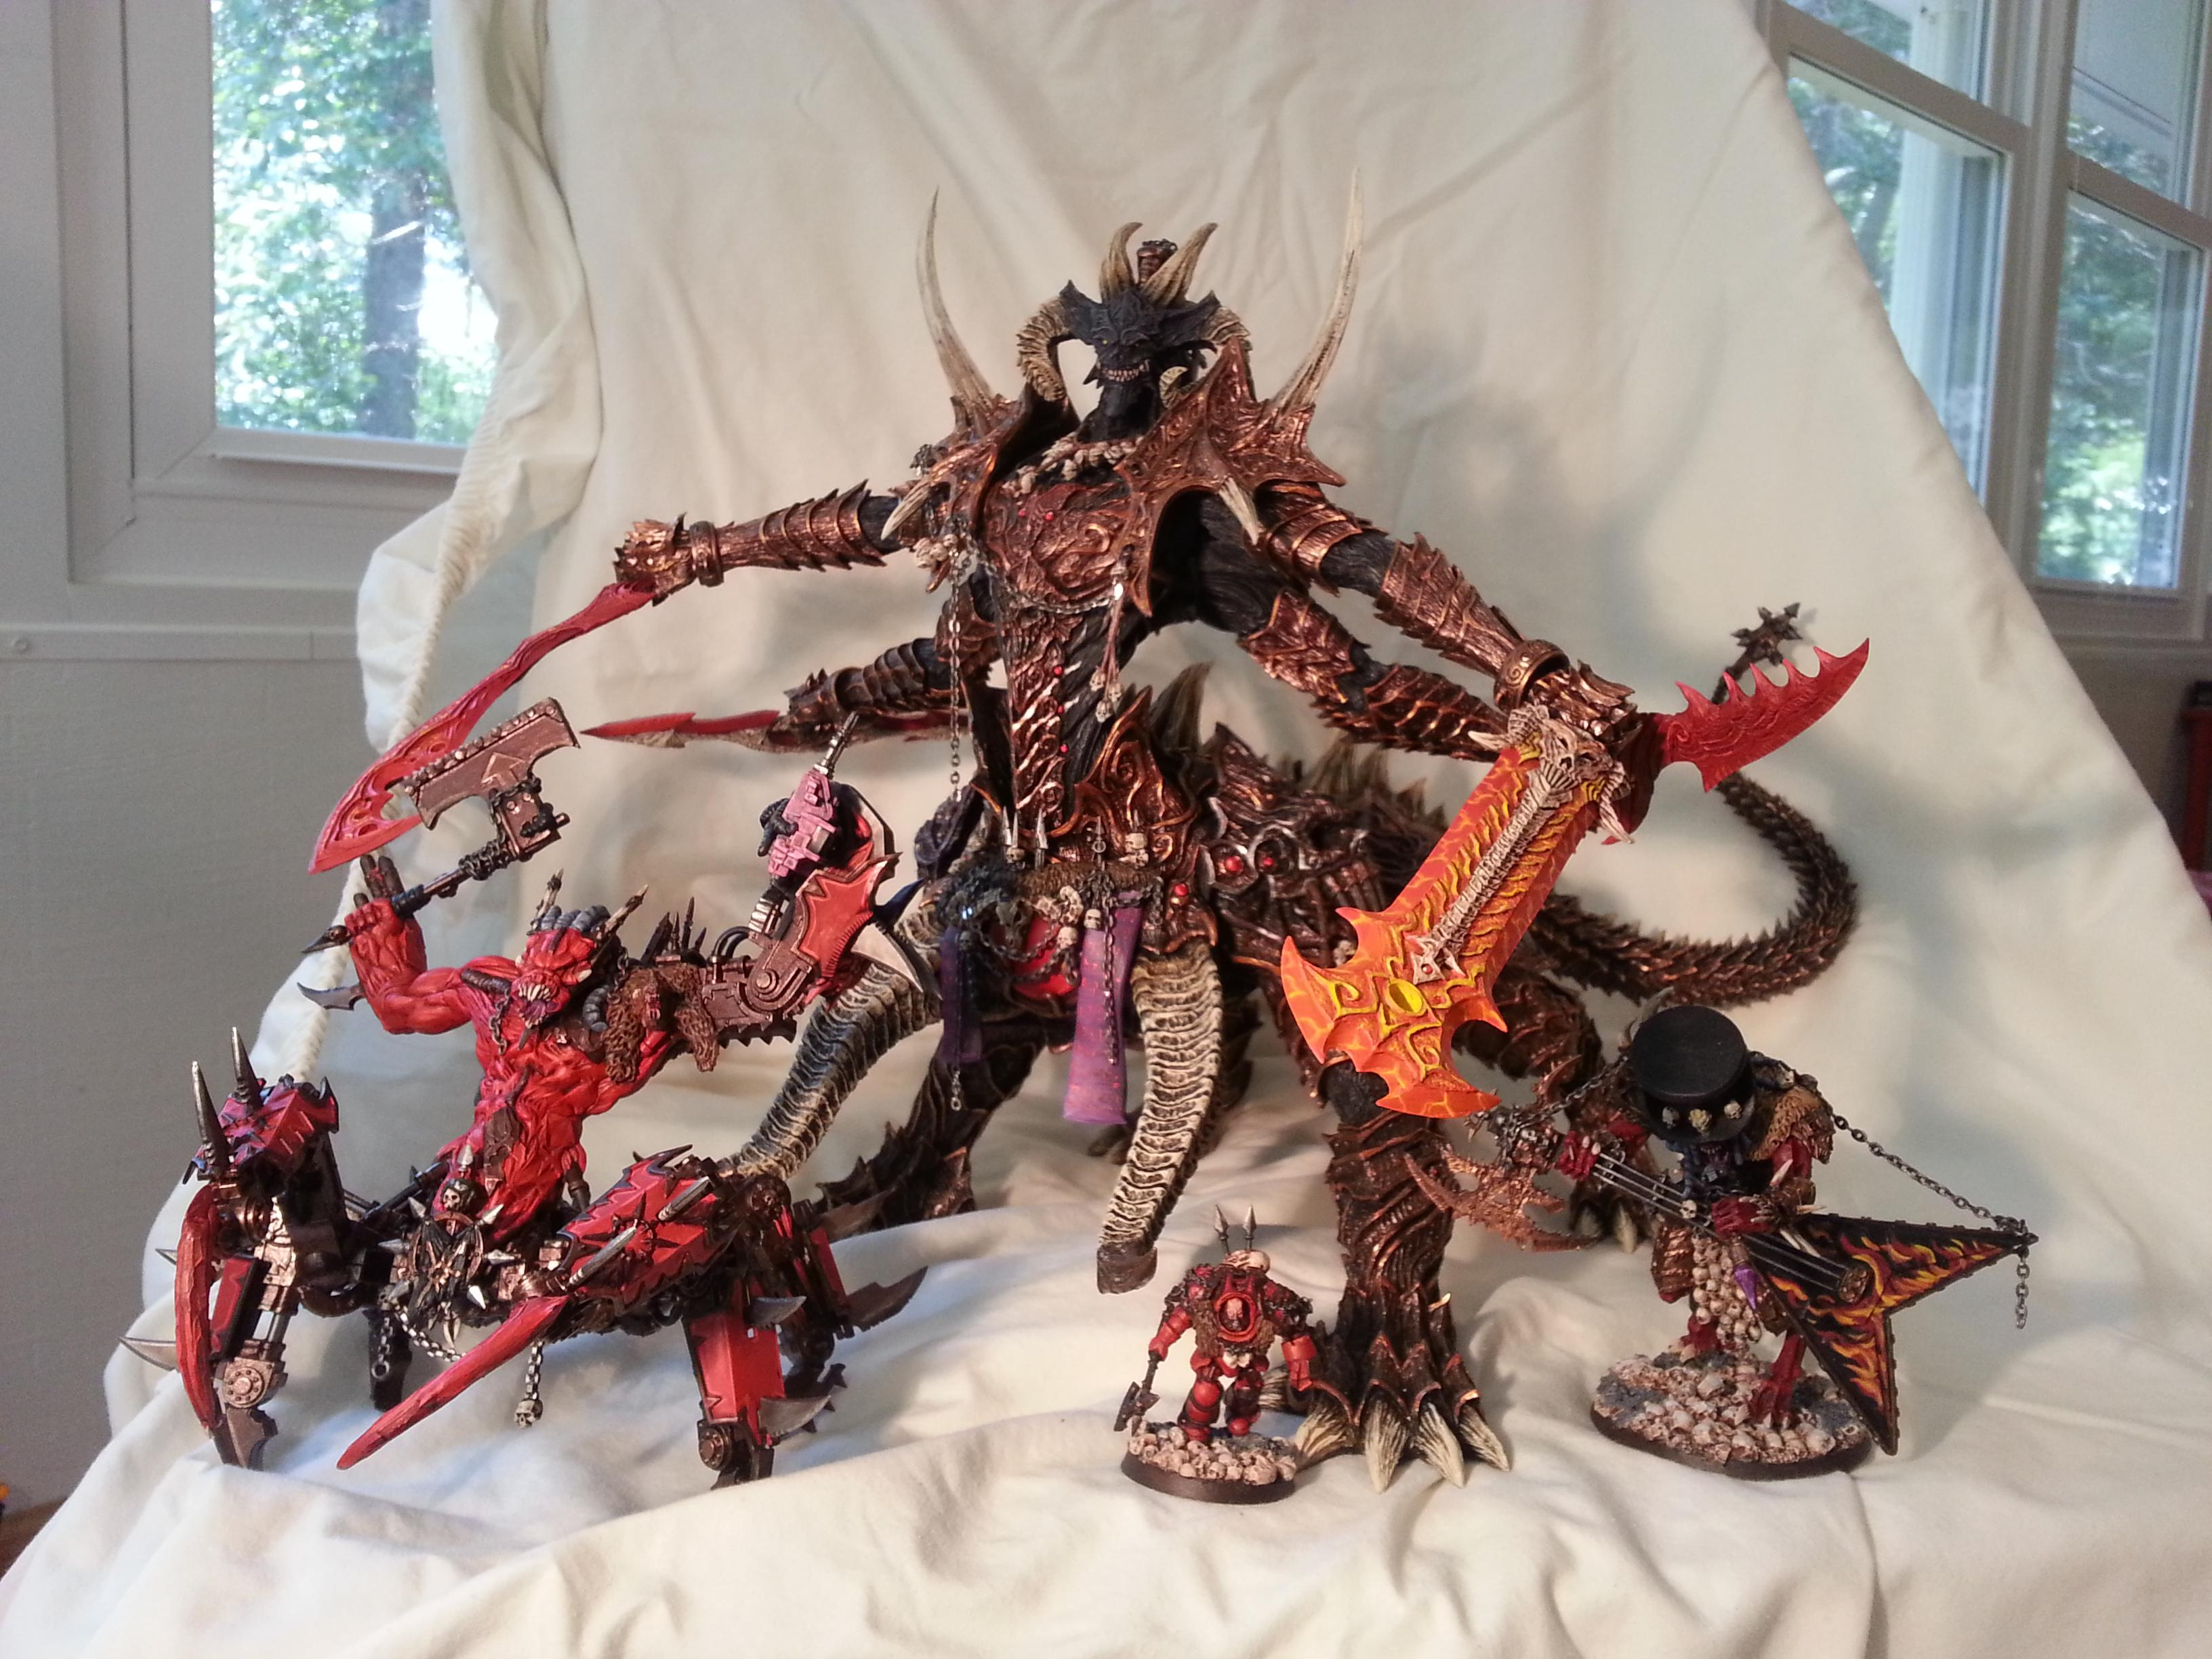 Archdaemon, Awesome, Comparison, Daemon Lord, Daemon Prince, Daemons, Homebrew, Khorne, Painted, Scratch Build, Soul Grinder, Warhammer 40,000, Warhammer Fantasy